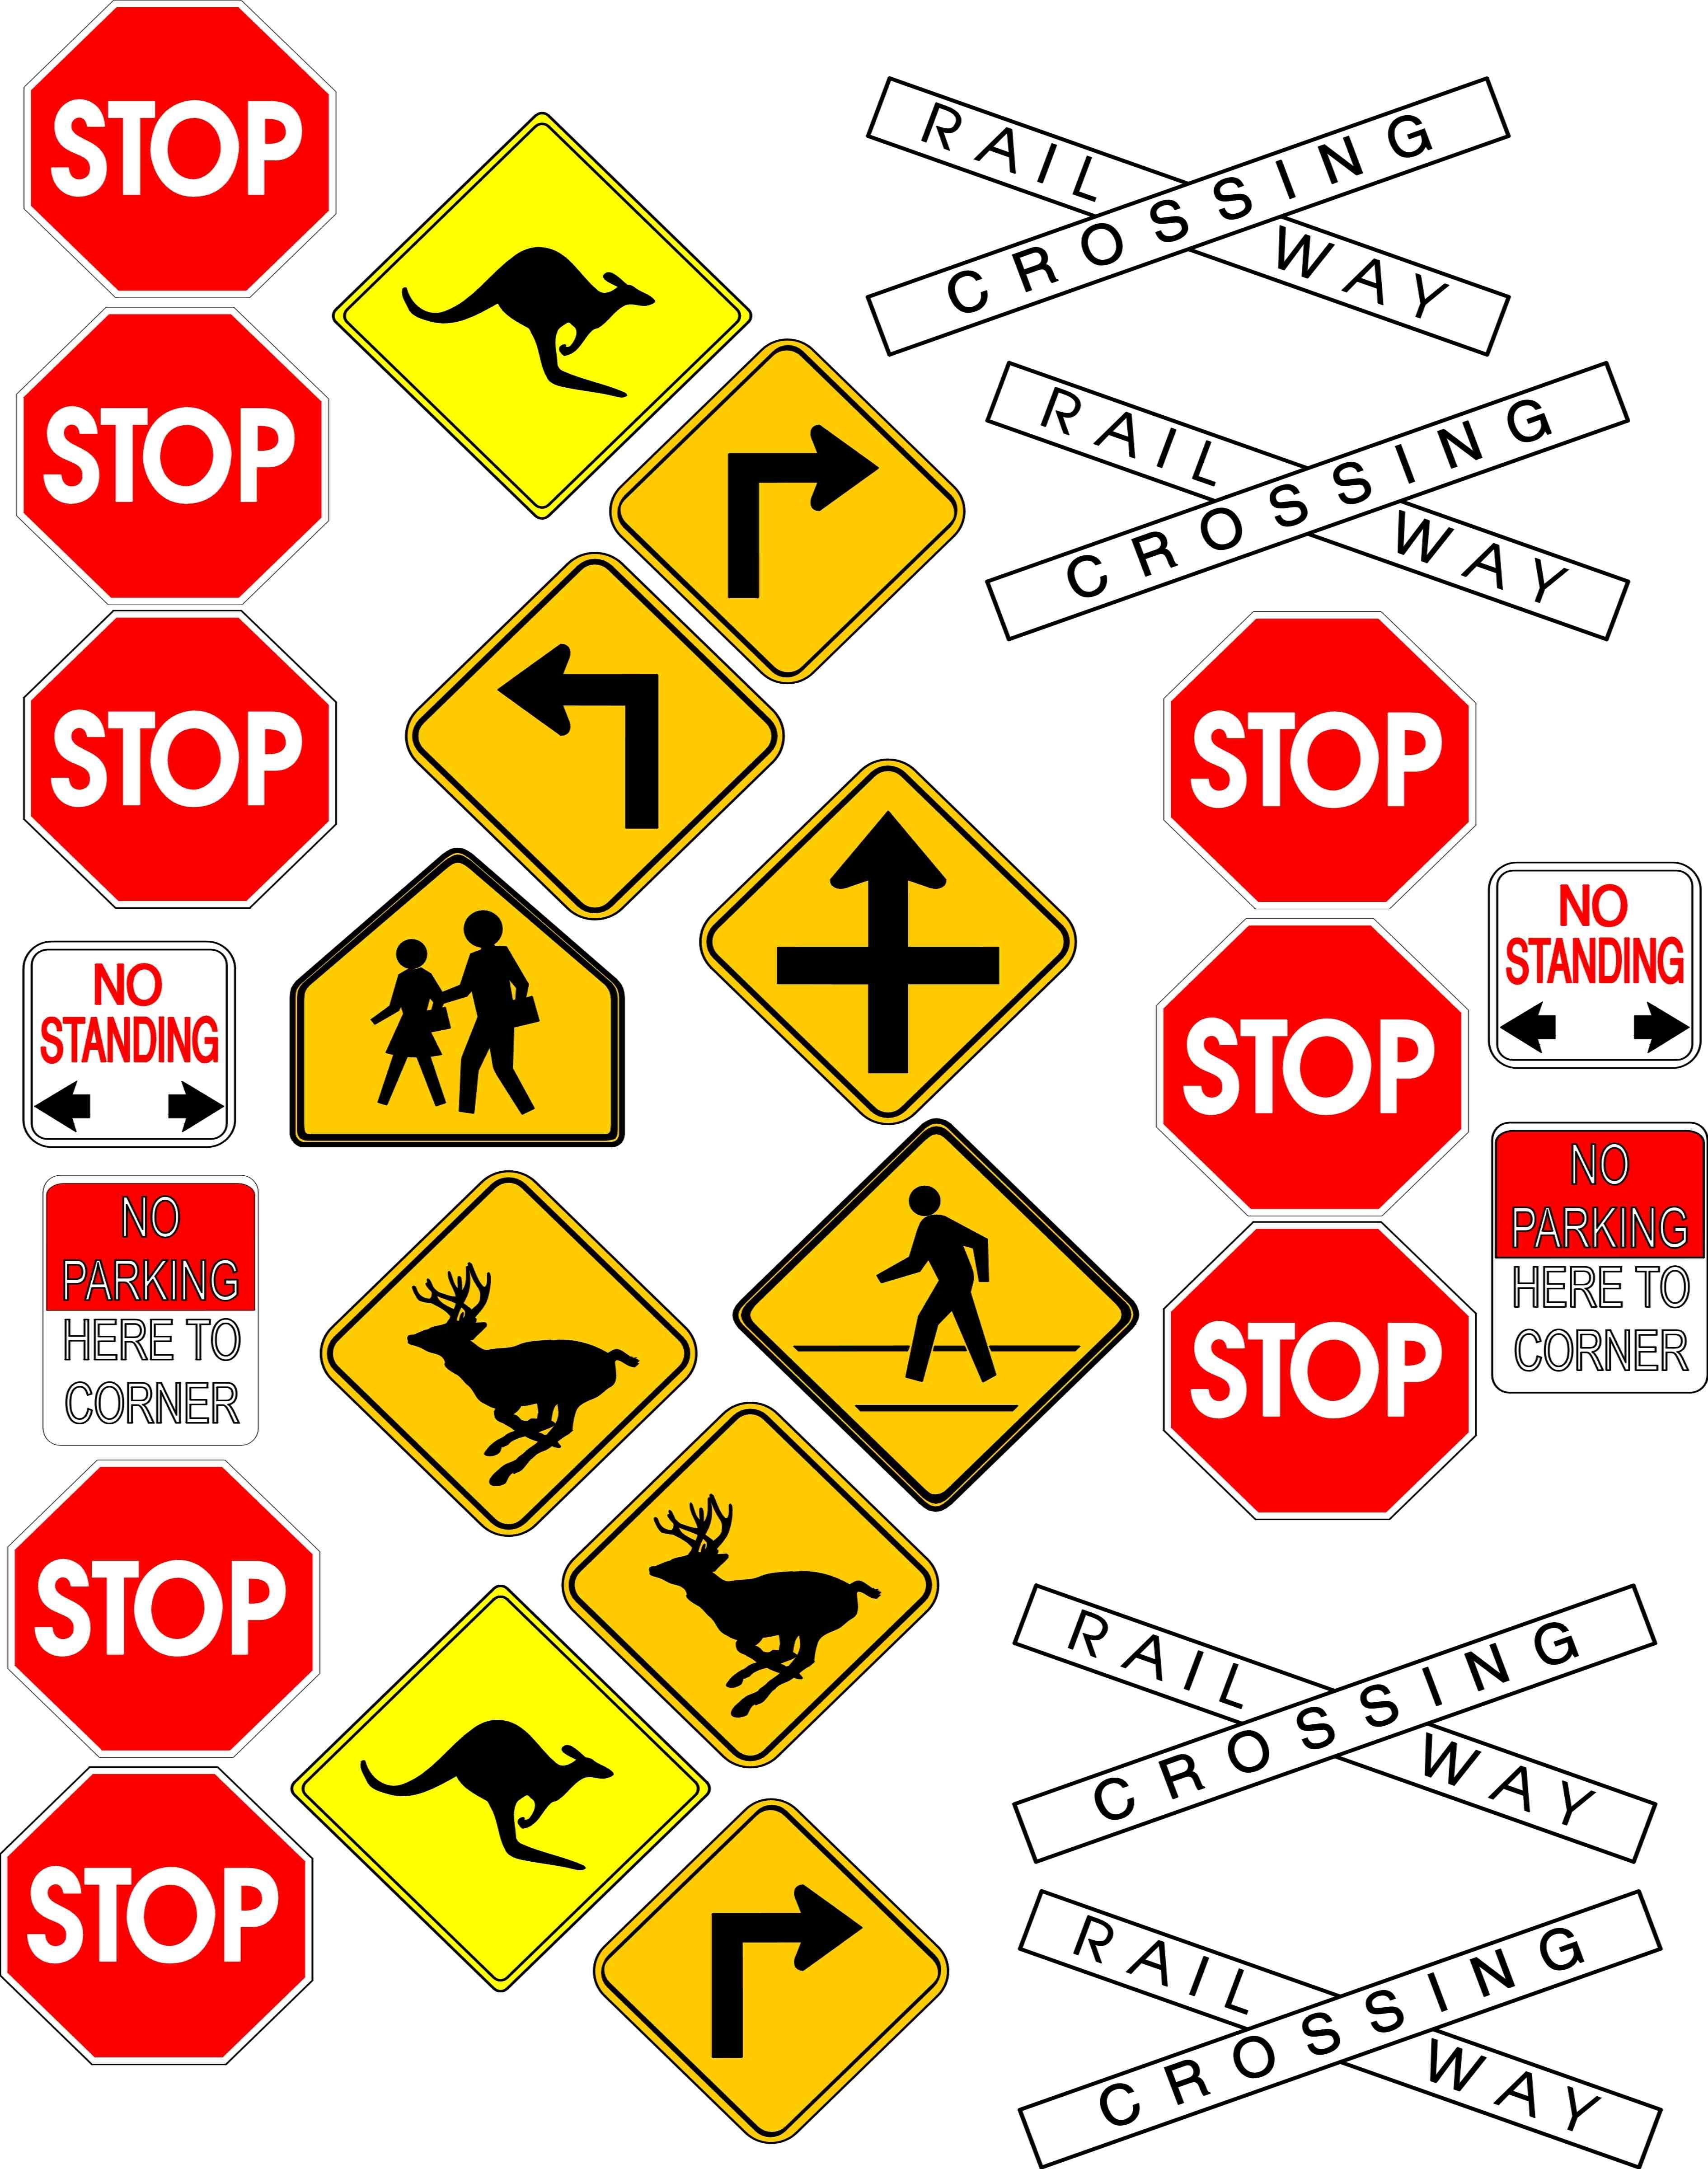 Free large scale signs and graphics family garden trains street signs manufactures and distributes traffic signs road signs novelty parking signs traffic signs or road signs are signs biocorpaavc Choice Image